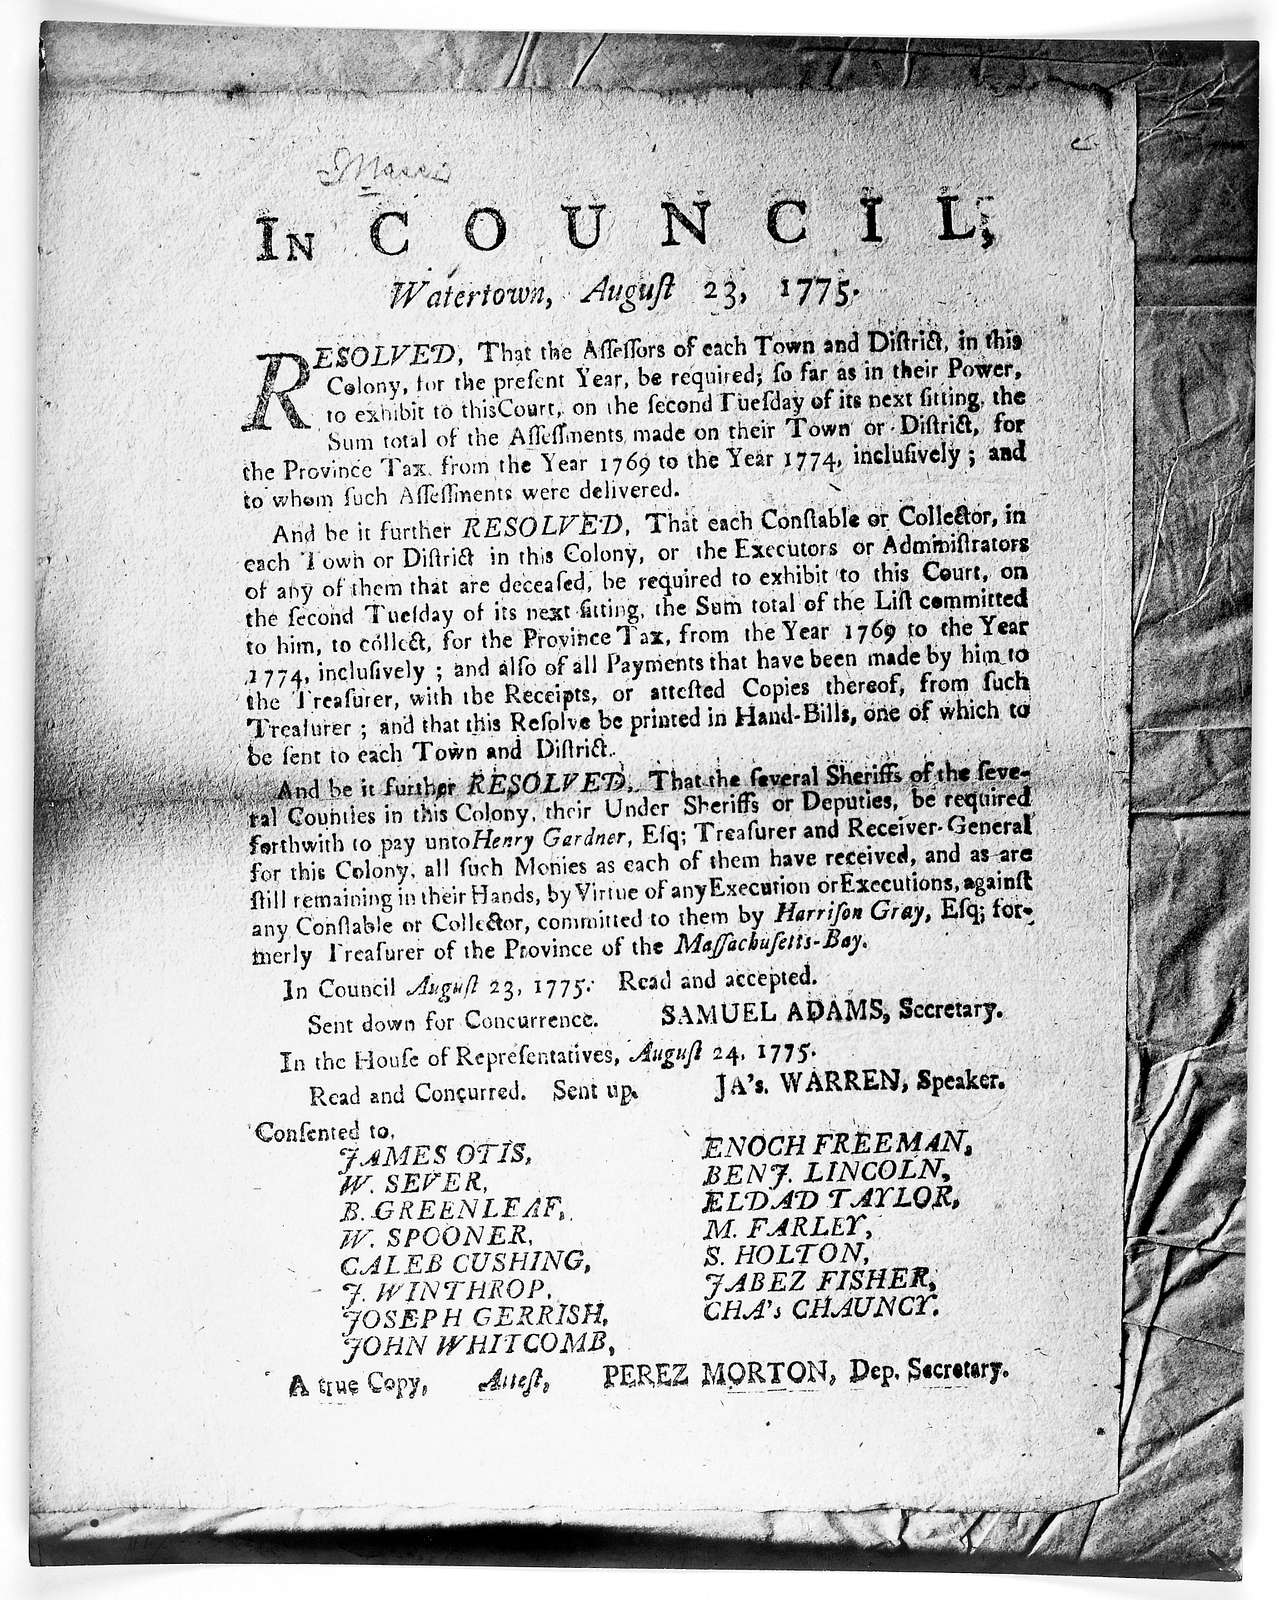 In Council. Watertown, August 23, 1775. Resolved, that the assessors of each town and district, in this colony, for the present year, be required, so far as in their power to exhibit to this court, on the second Tuesday of its next sitting the s